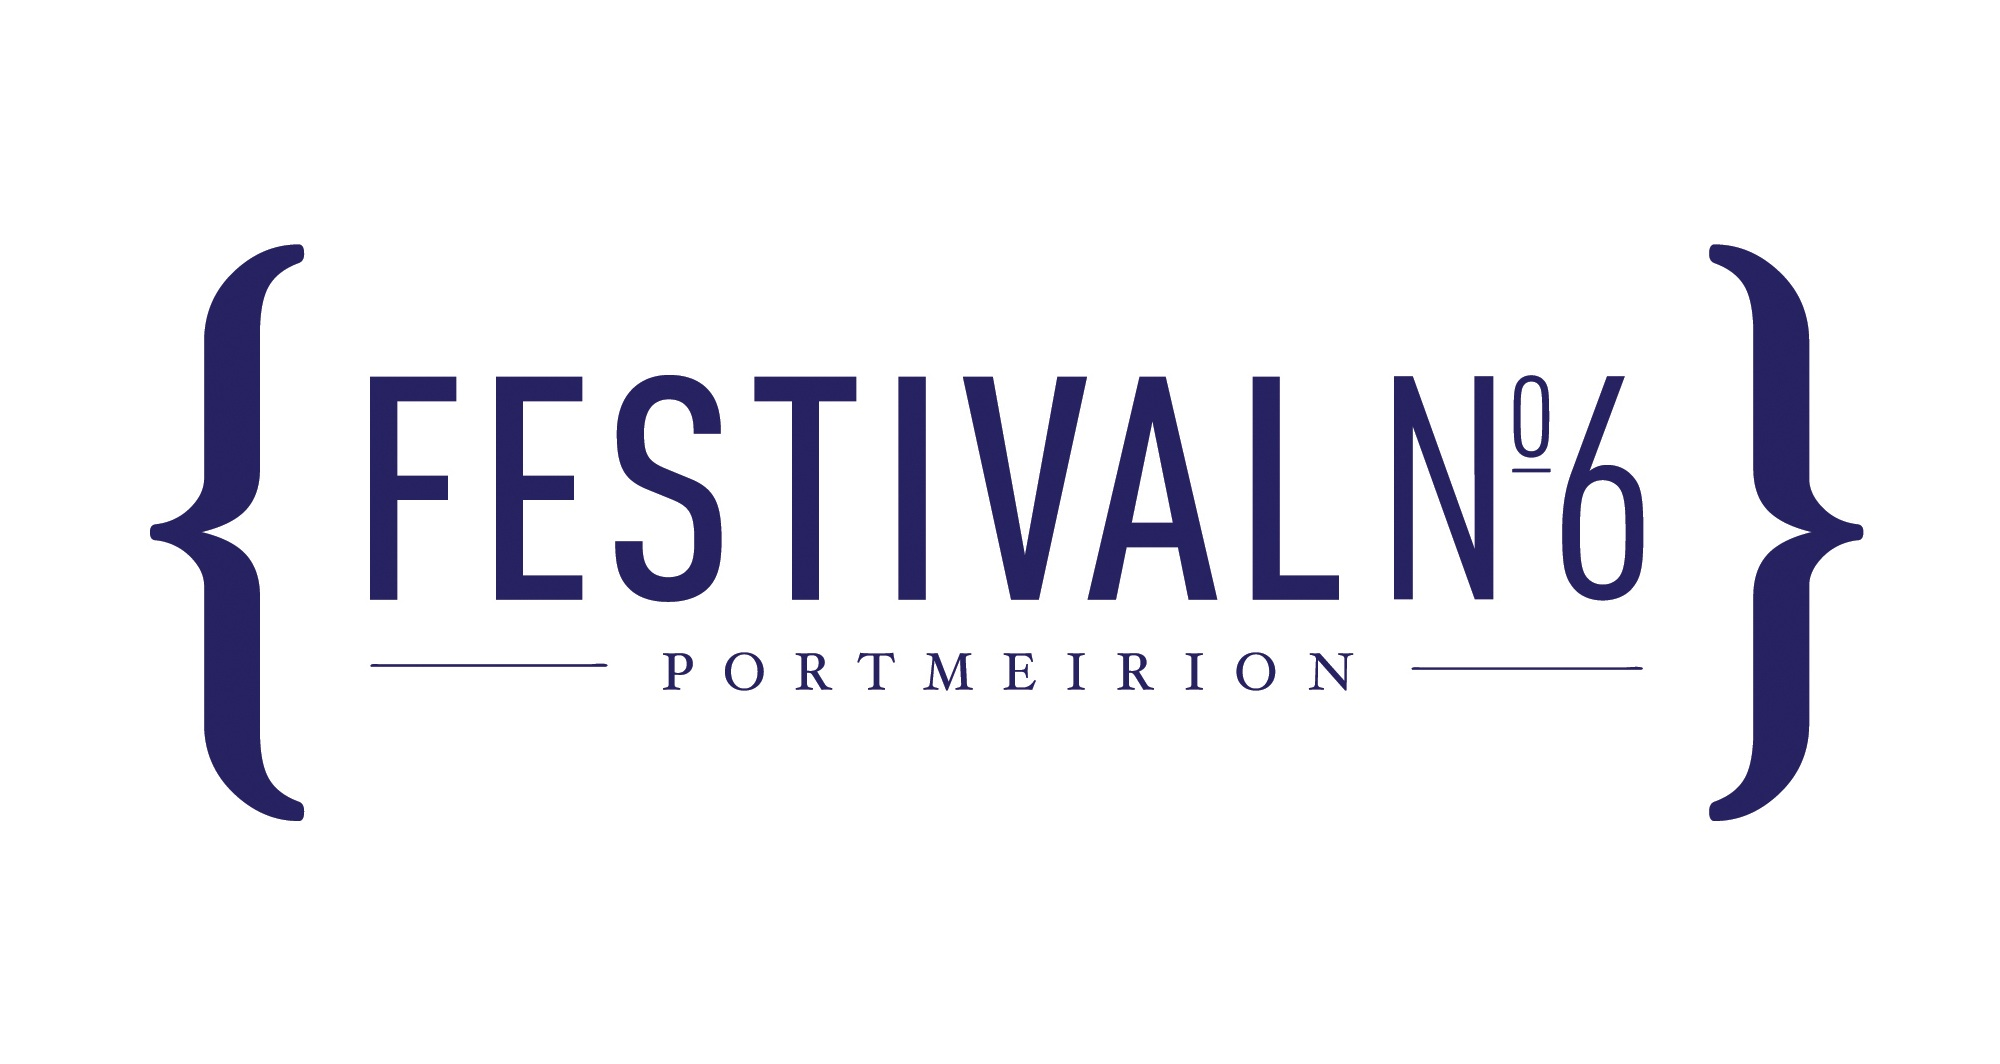 NEWS: Festival No 6 announces second wave of artists